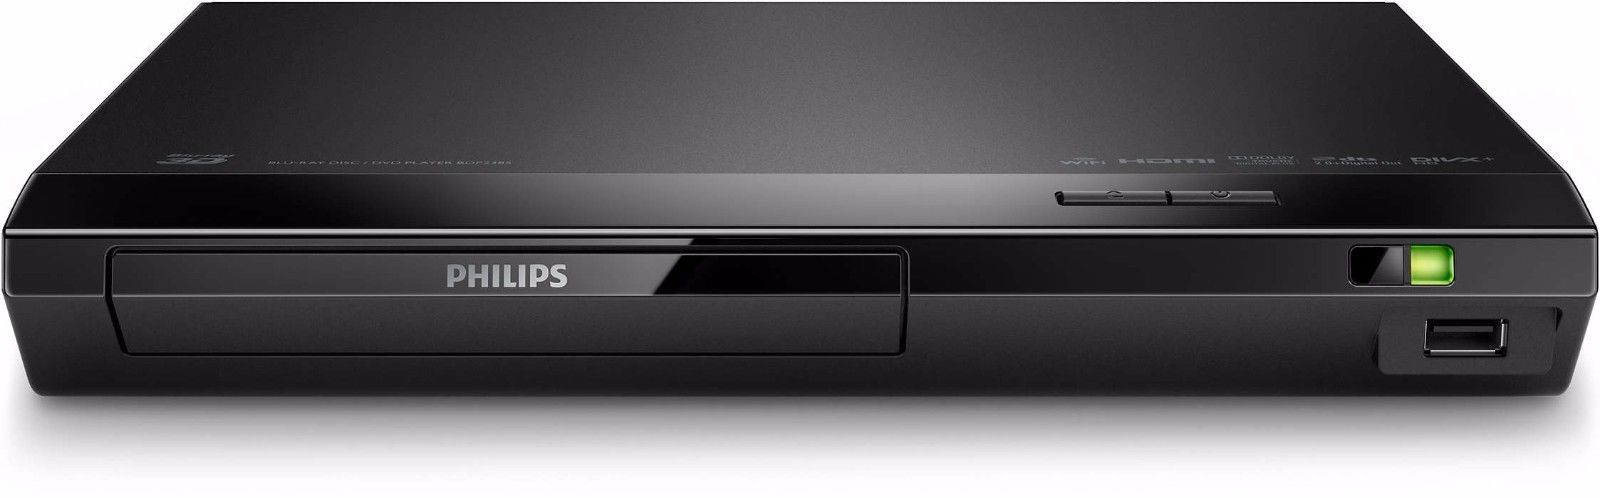 PHILIPS BDP-2385 3D Blu-ray & DVD with Built-in Wi-Fi & Remote(Refurbished) by Philips